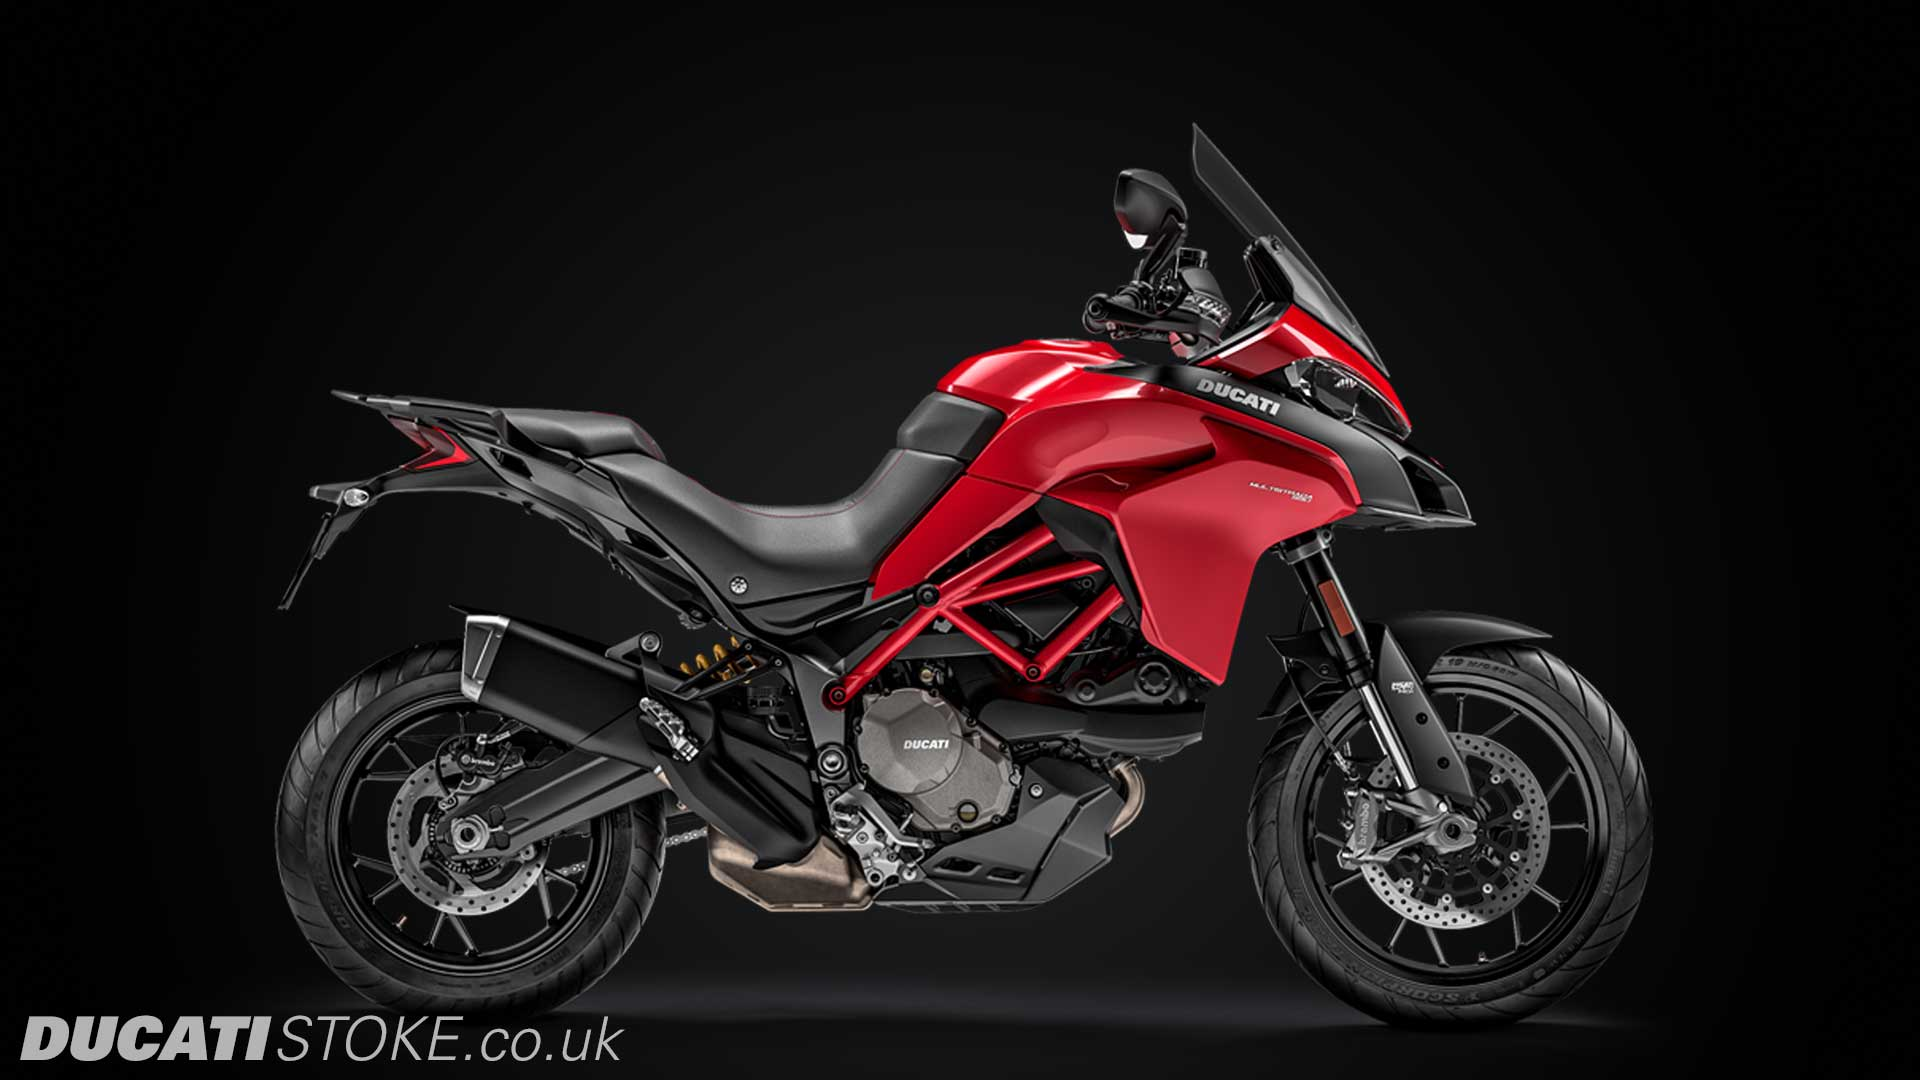 2019 Ducati Multistrada 950 for sale at Ducati Worcester, Worcestershire, Scotland